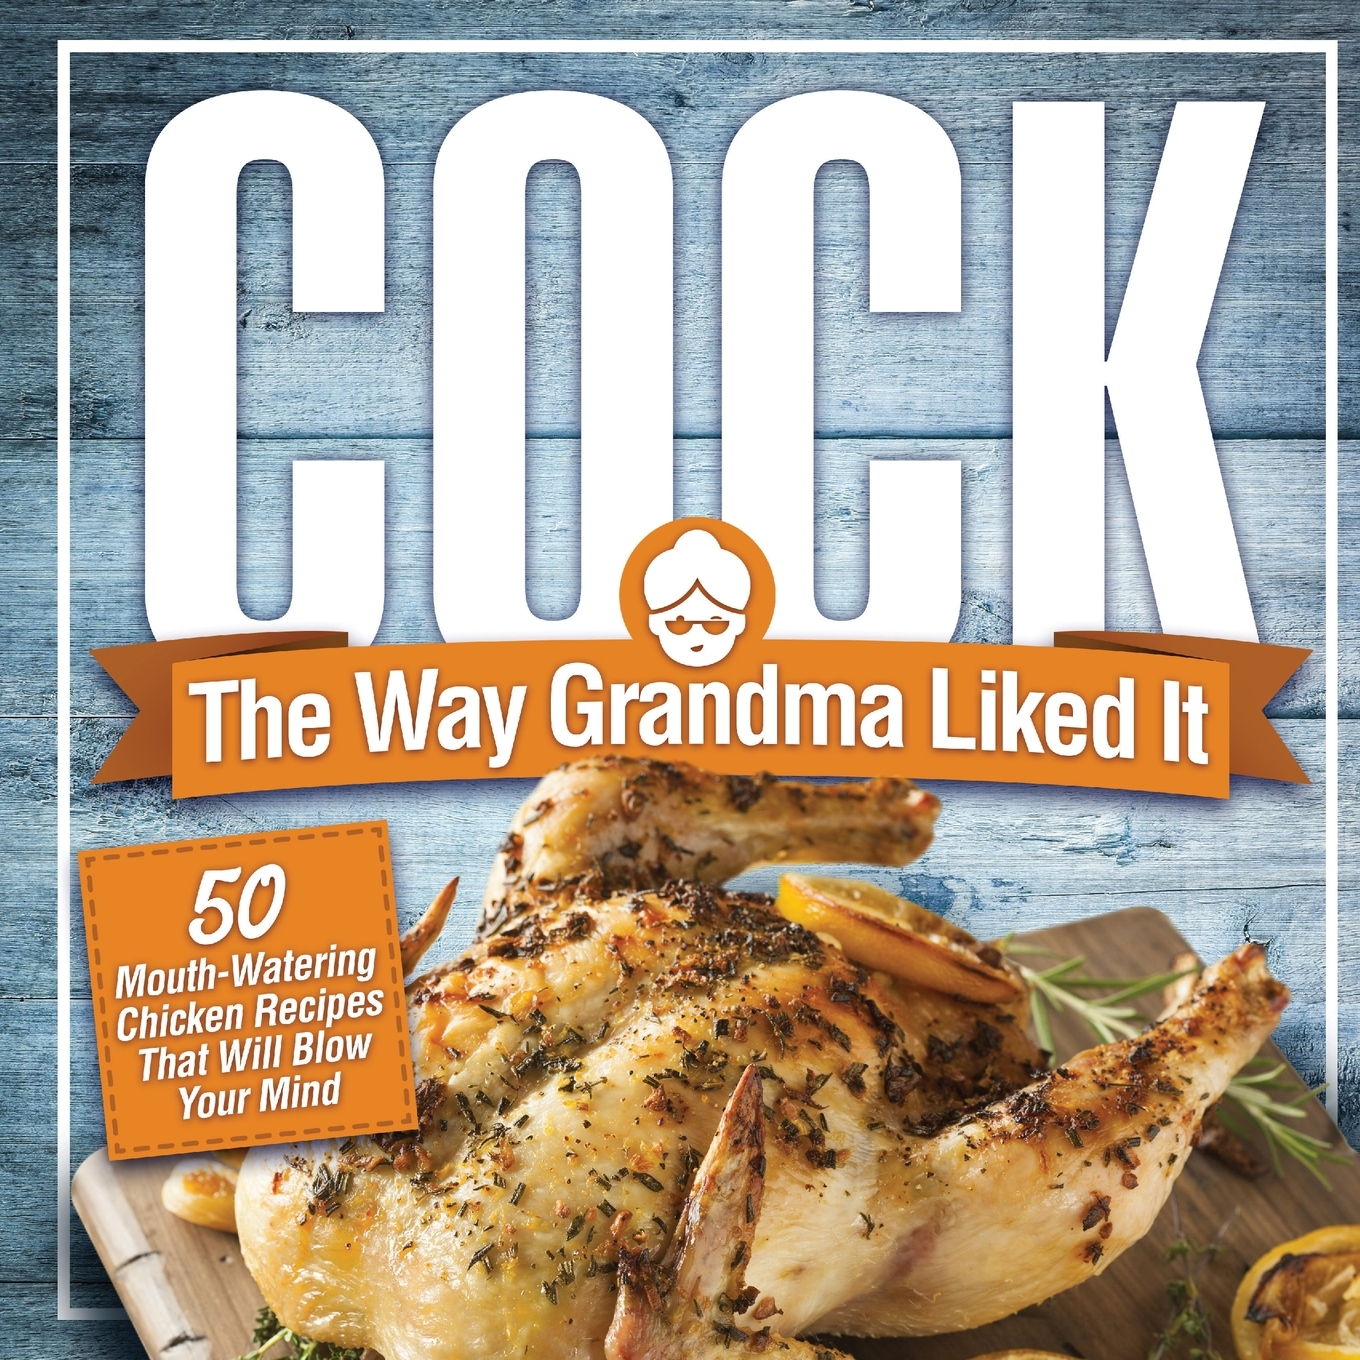 Funny Cock Pics cock, the way grandma liked it: 50 mouth-watering chicken recipes that will  blow your mind - a delicious and funny chicken recipe cookbook that will